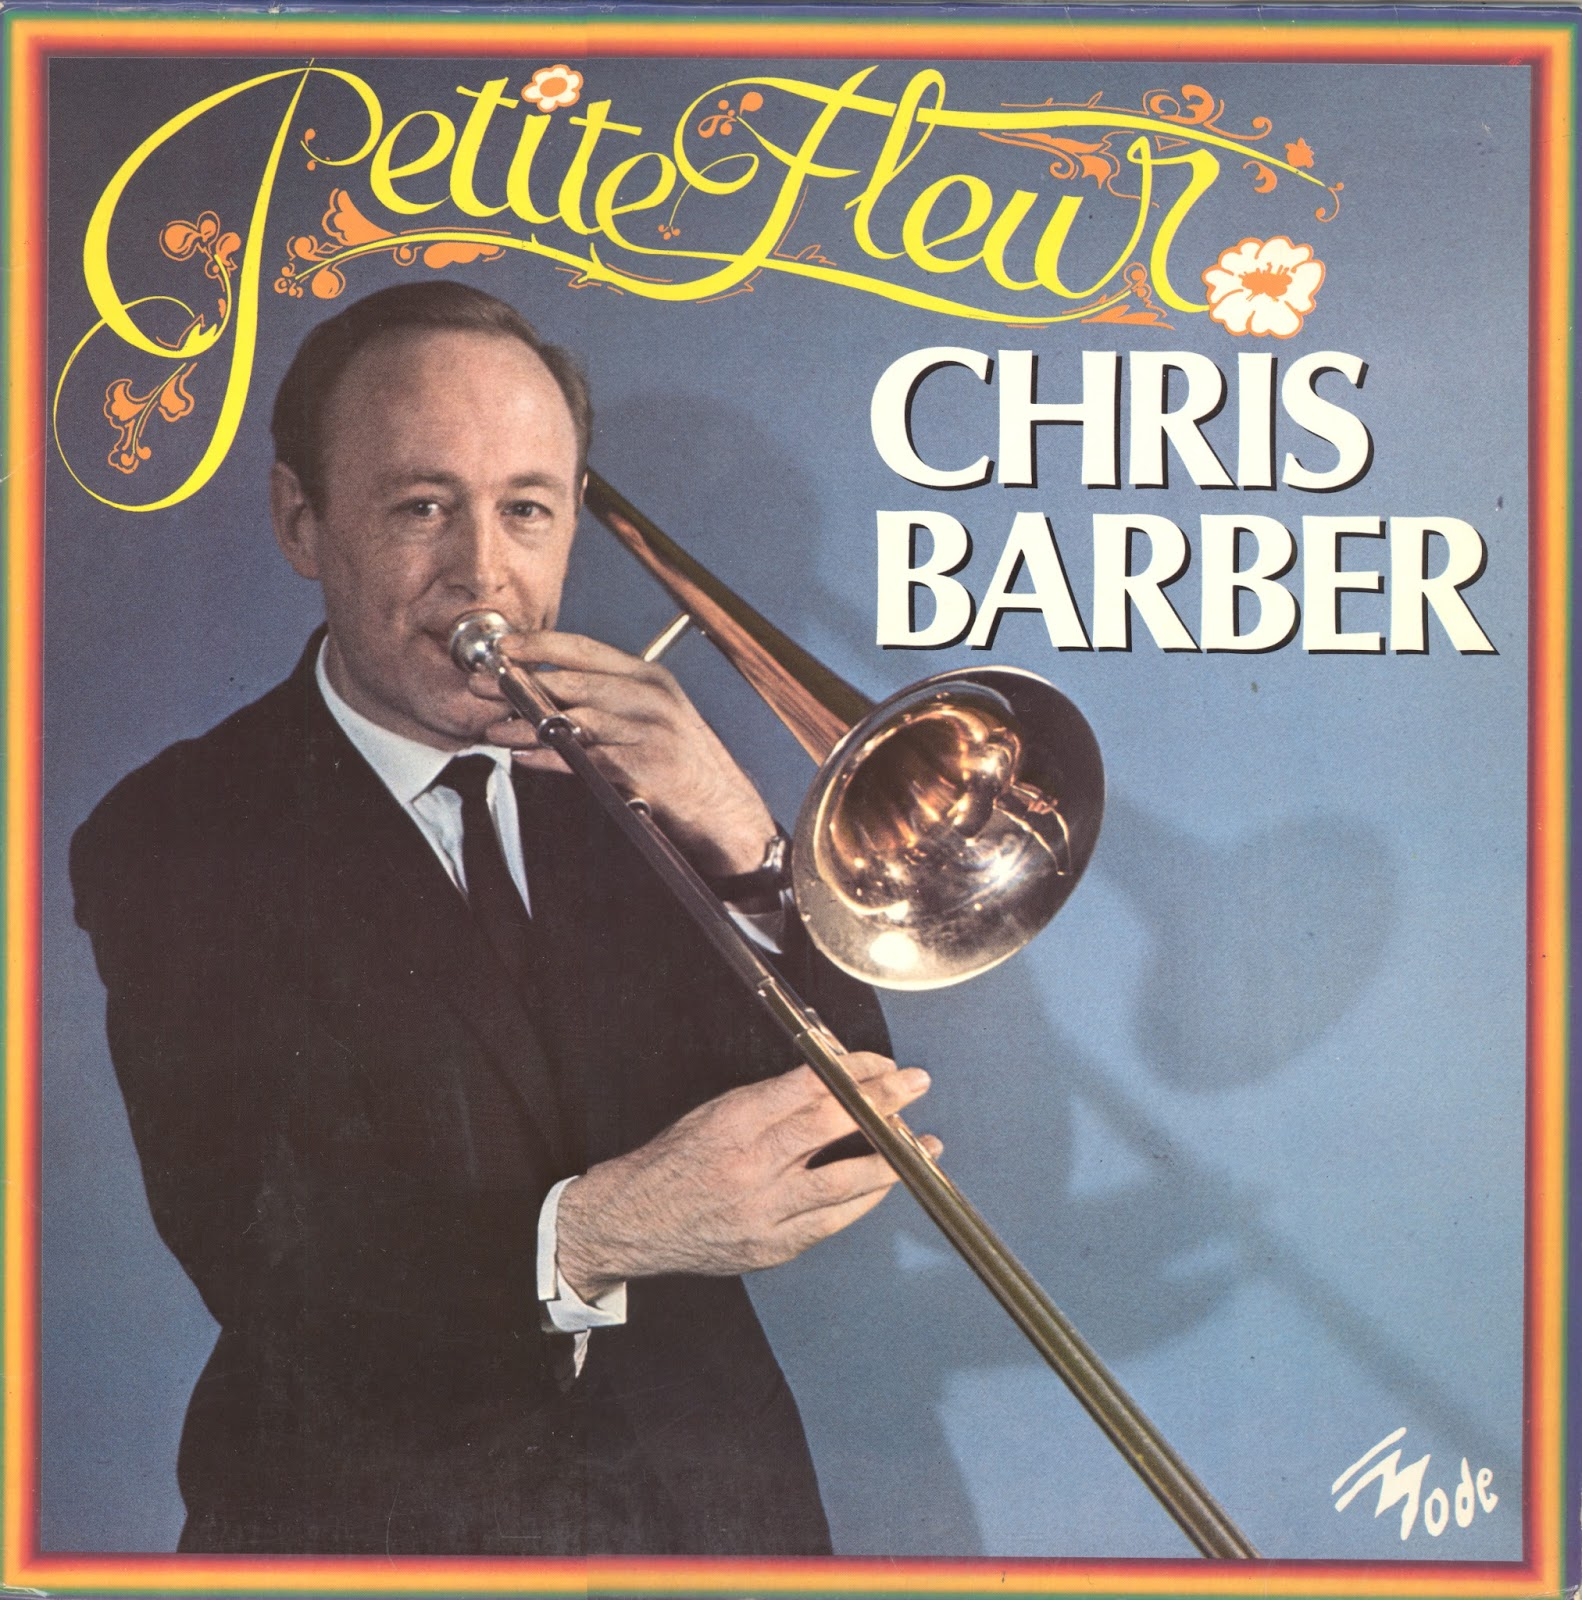 Chris Barber salary